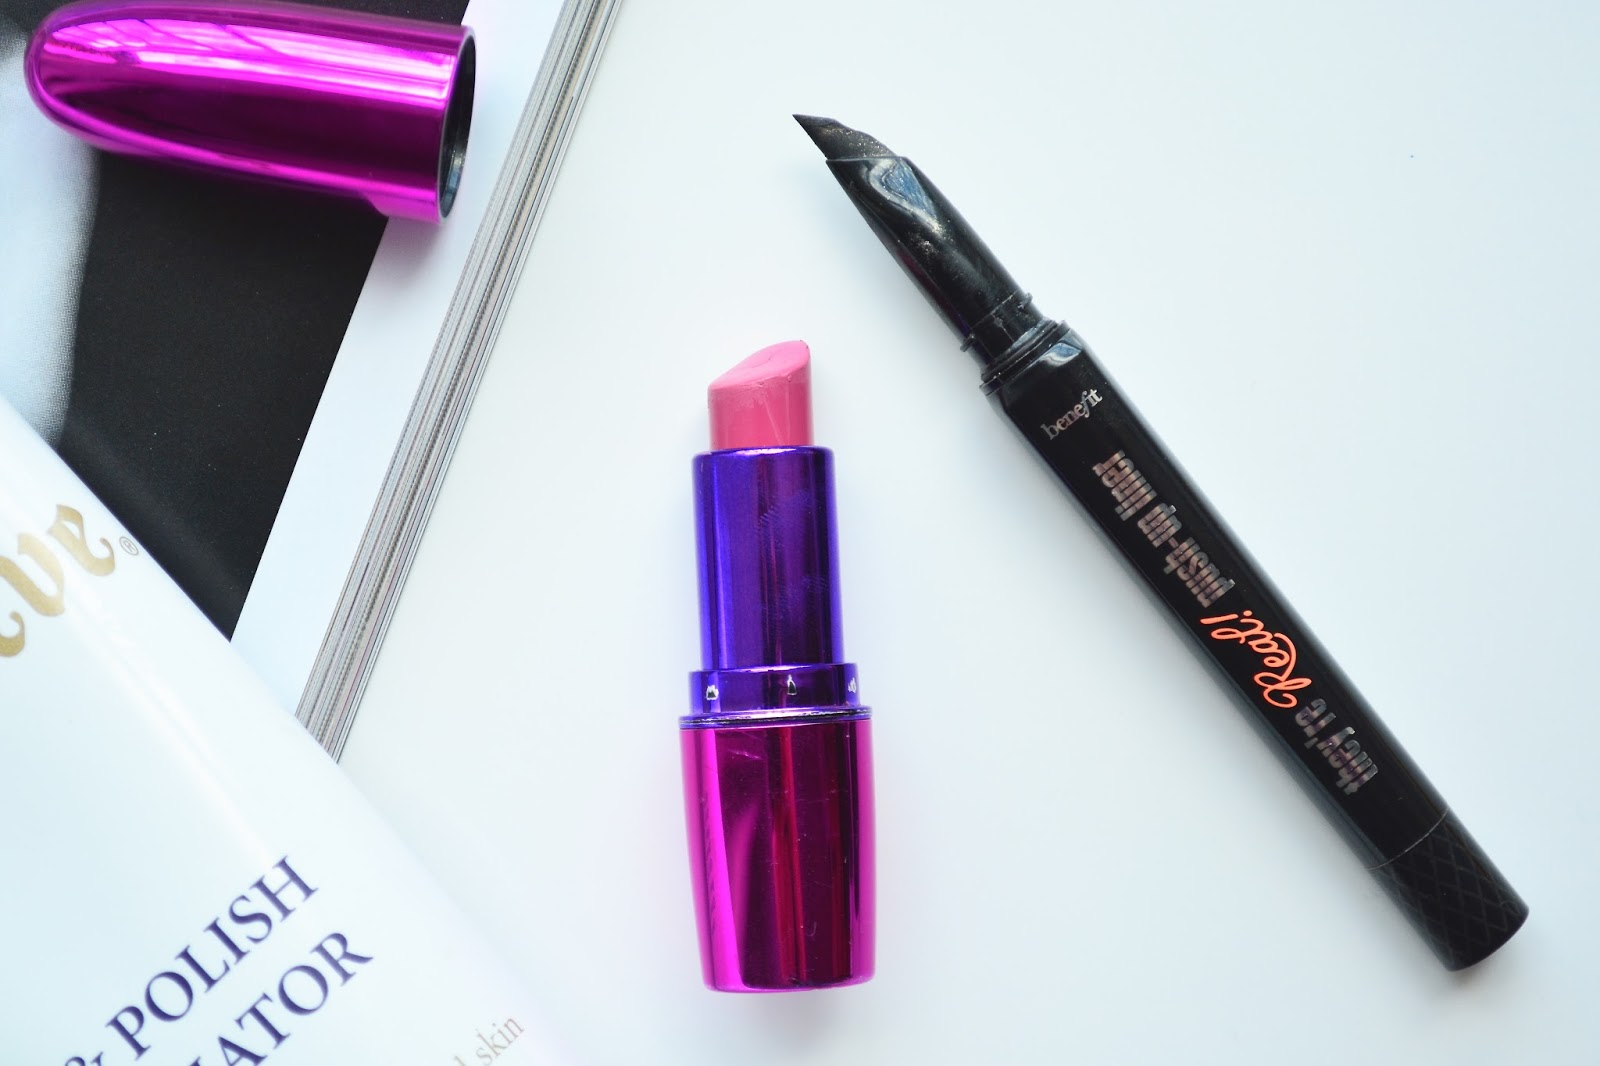 Makeup Revolution Ken Will Want Me Lipstick, Benefit They're Real Push Up Liner